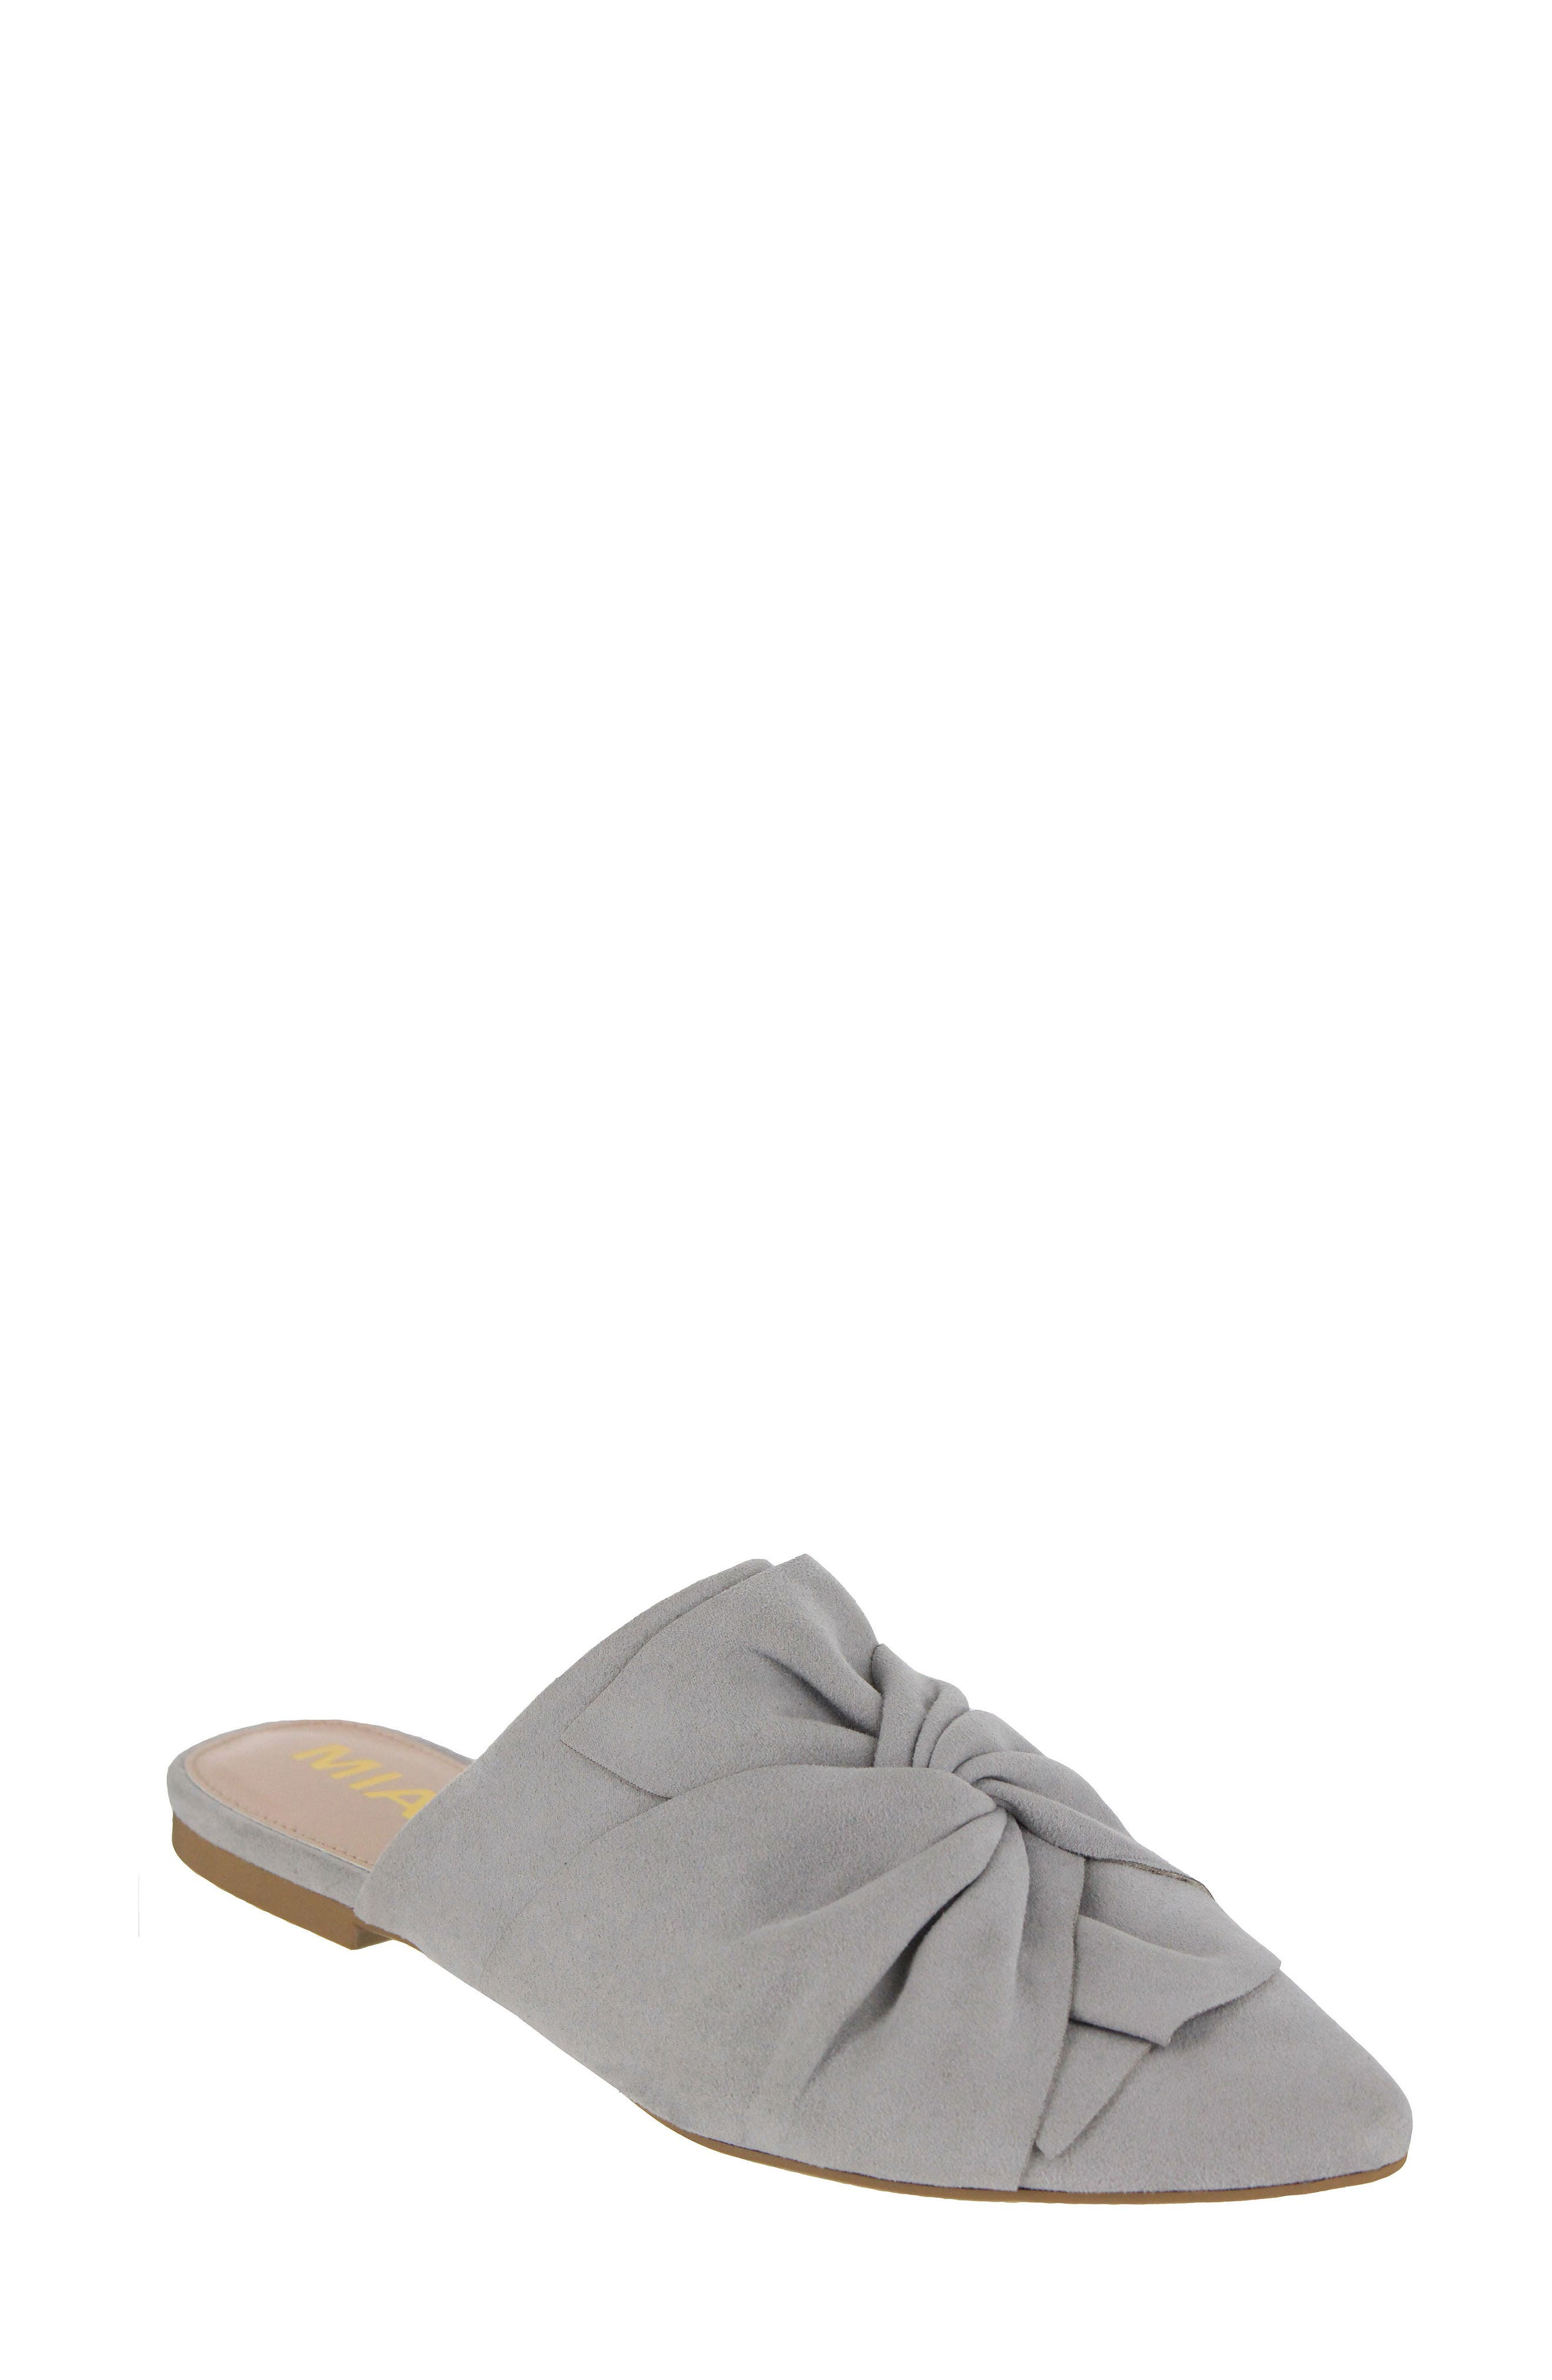 Cabaret Knotted Mule,                         Main,                         color, Steel Gray Suede